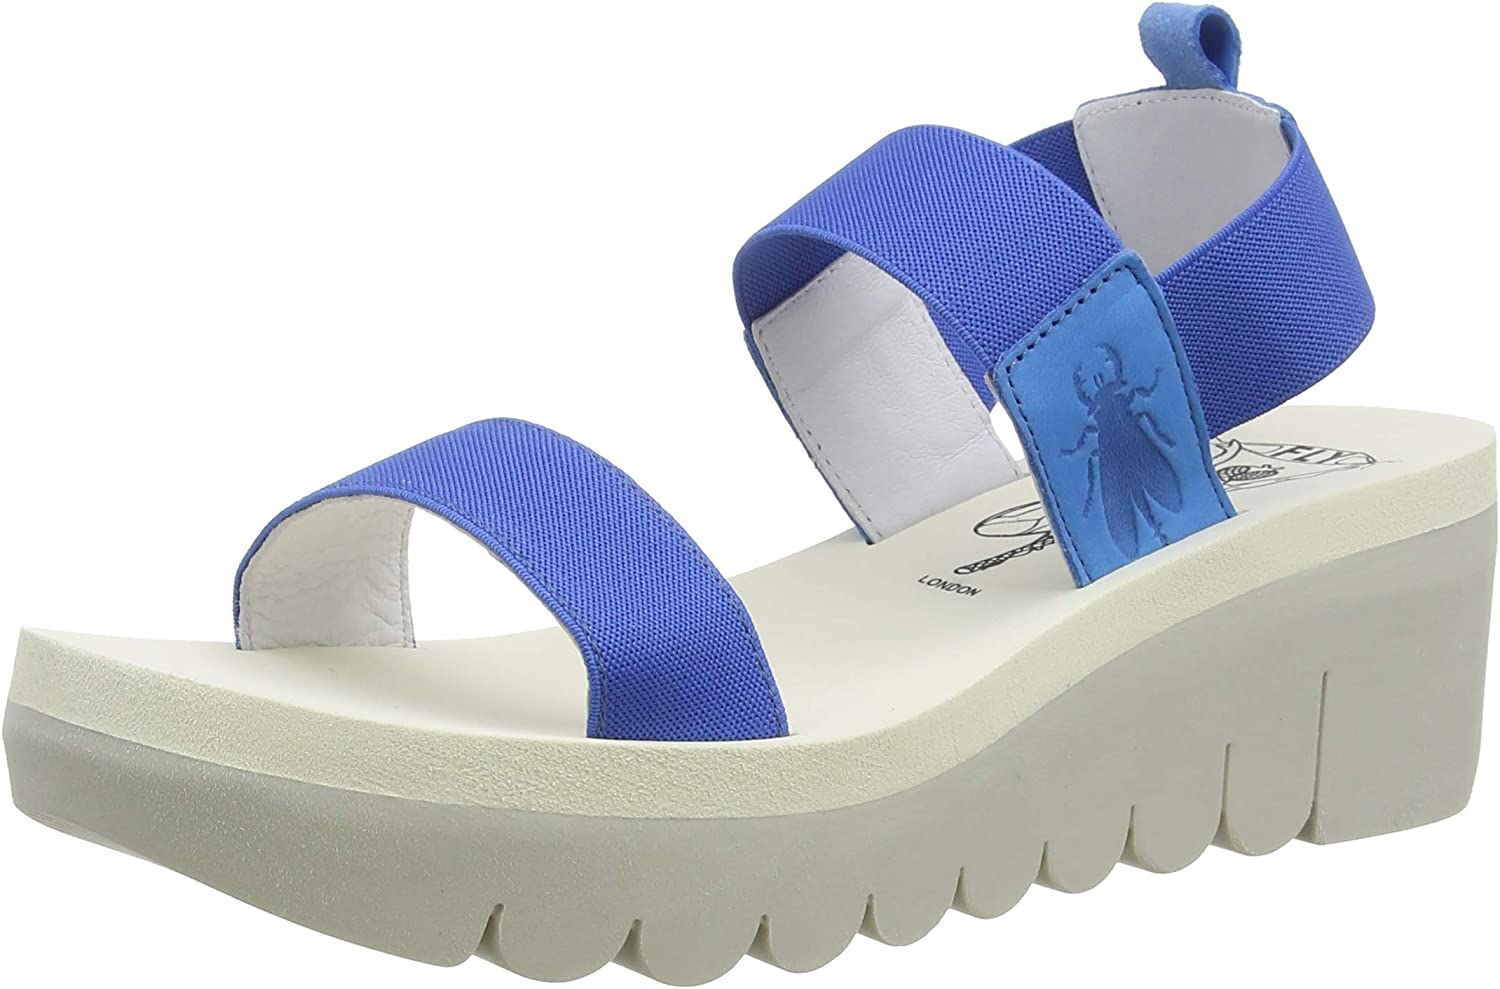 Fly Max 60% OFF London Women's Slingback Sandals Back Max 74% OFF Sling